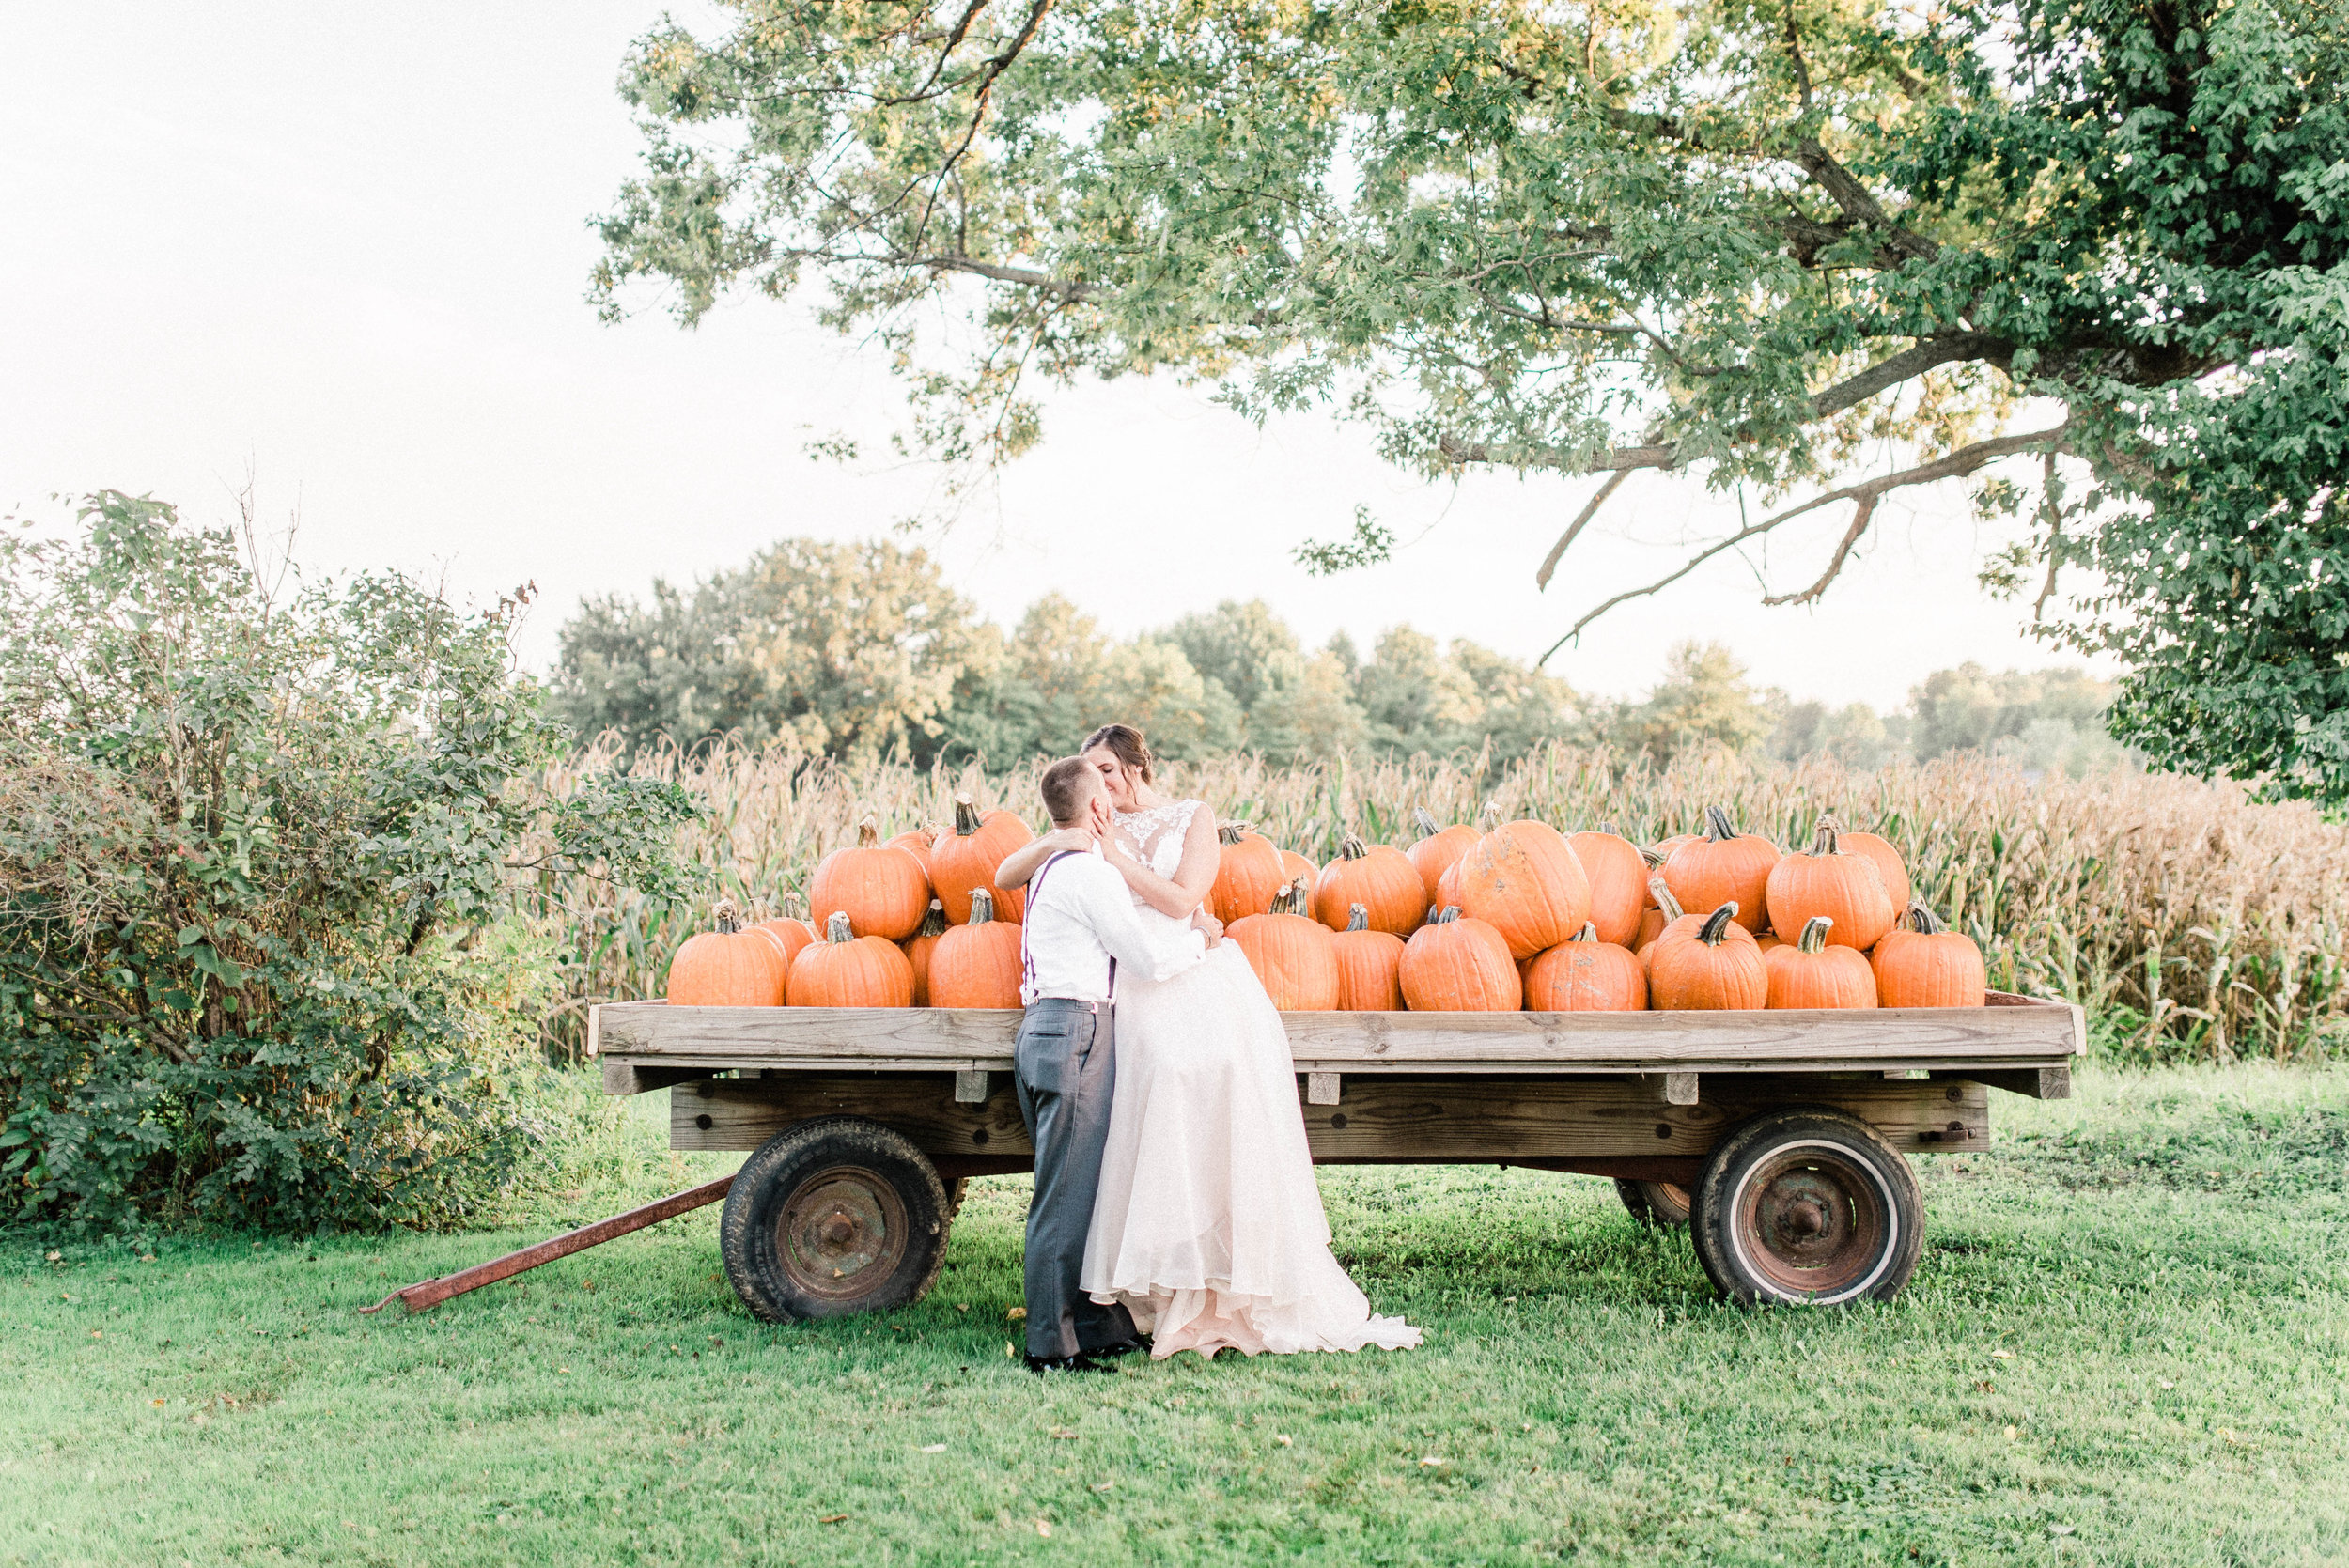 Megan + Alan | Rustic Fall Wedding at the Barn on Maryland Ridge in Bloomington, IN | International Indianapolis Elopement & Destination Wedding Photographers